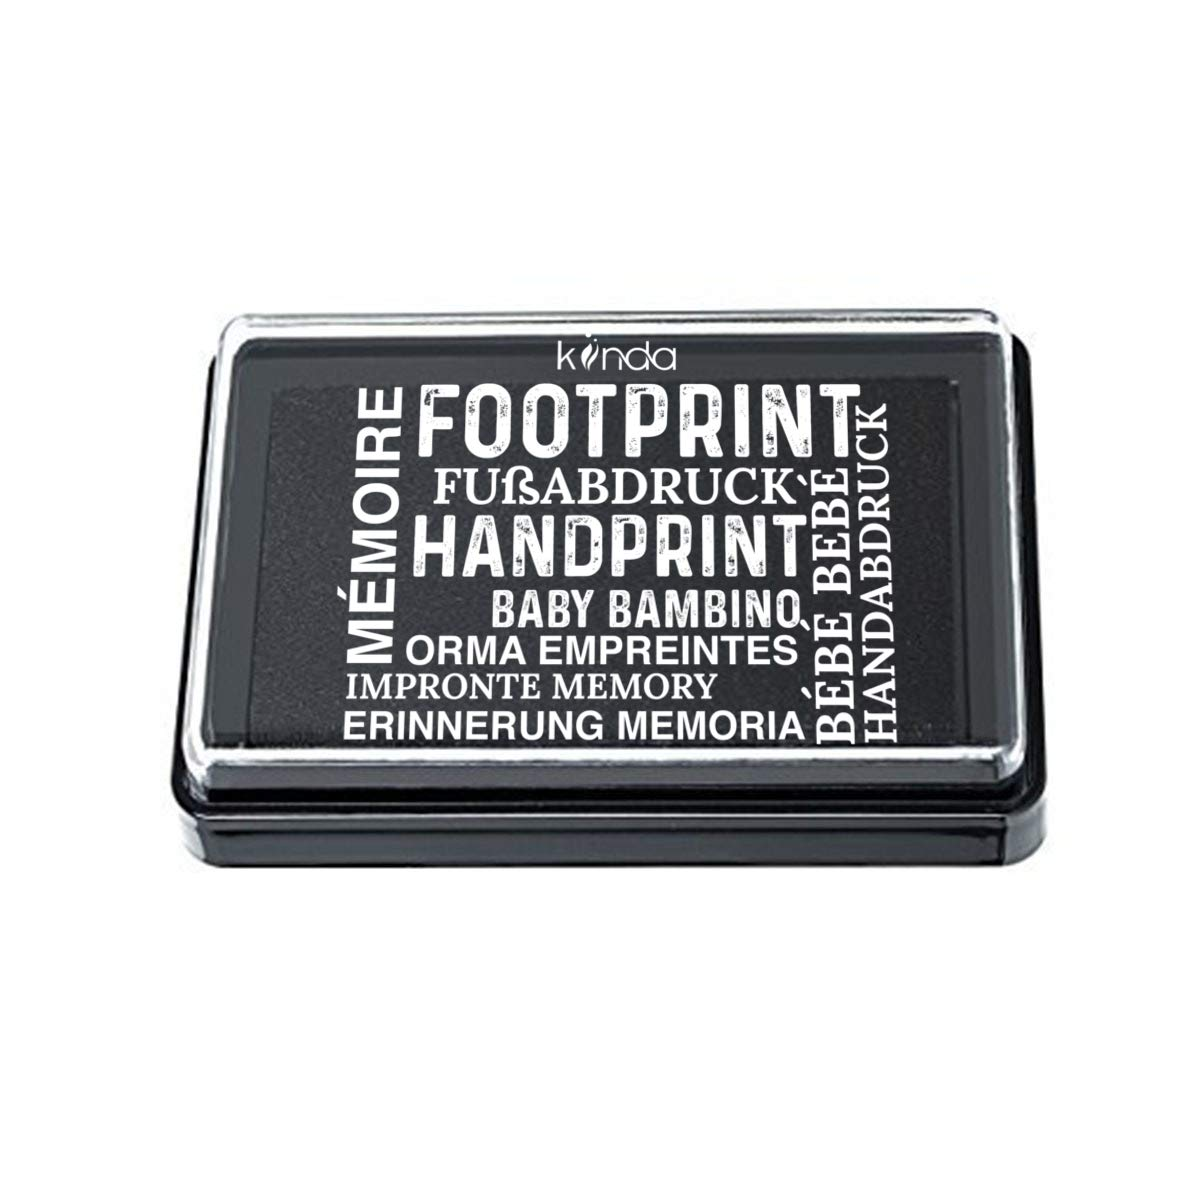 Acid-Free Smudge-Proof Designs Baby Ink Pad 100/% Non-Toxic Green Print Stamps Reusable Feet /& Hands Stamps Handprint /& Footprint Newborn Kit Ideal Family Memory